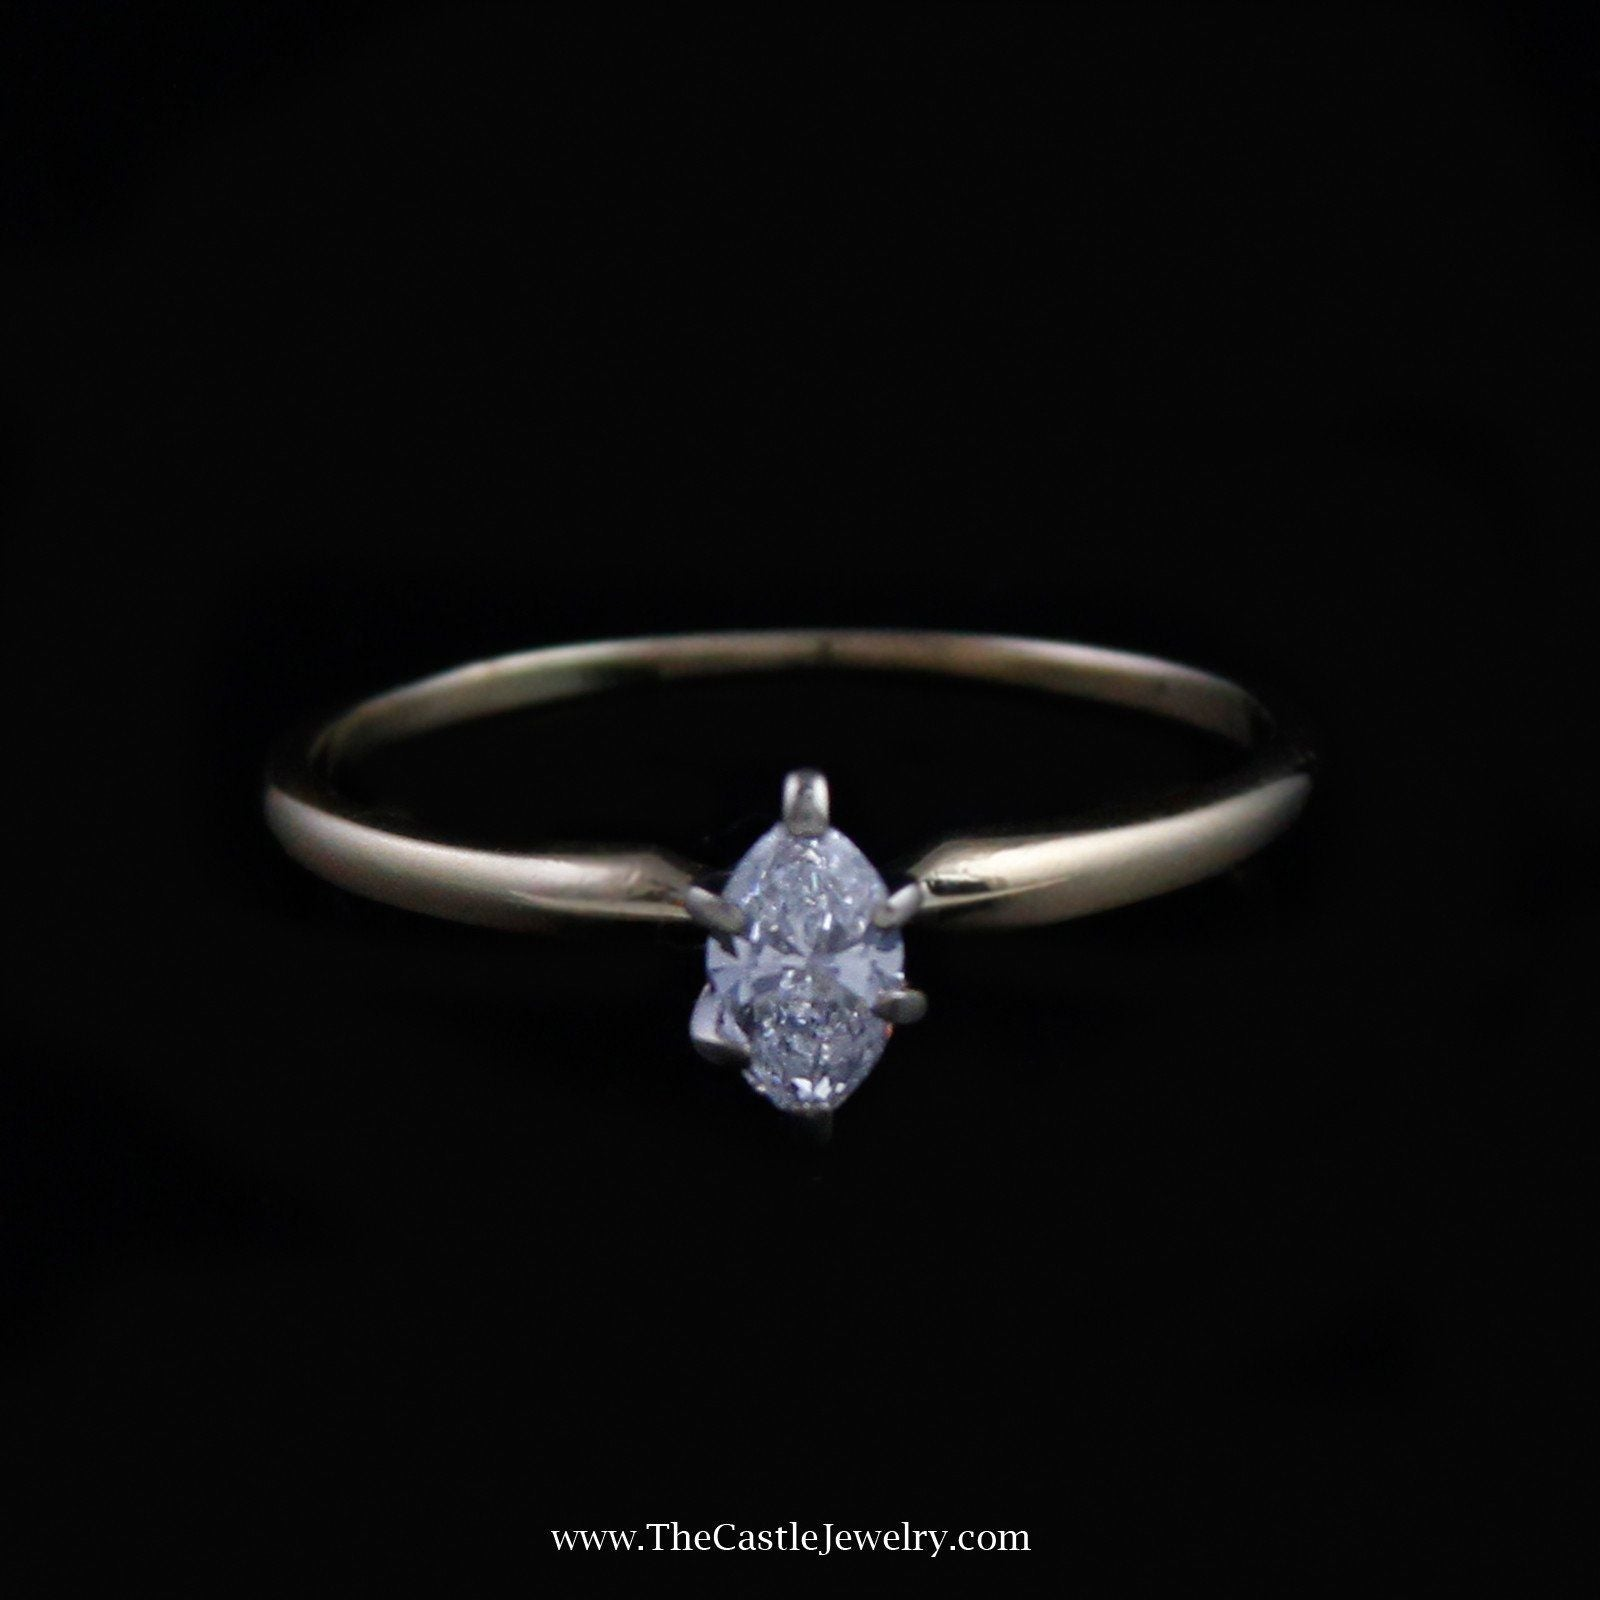 Beautiful Marquise Solitaire Diamond Engagement Ring in 14K Yellow Gold